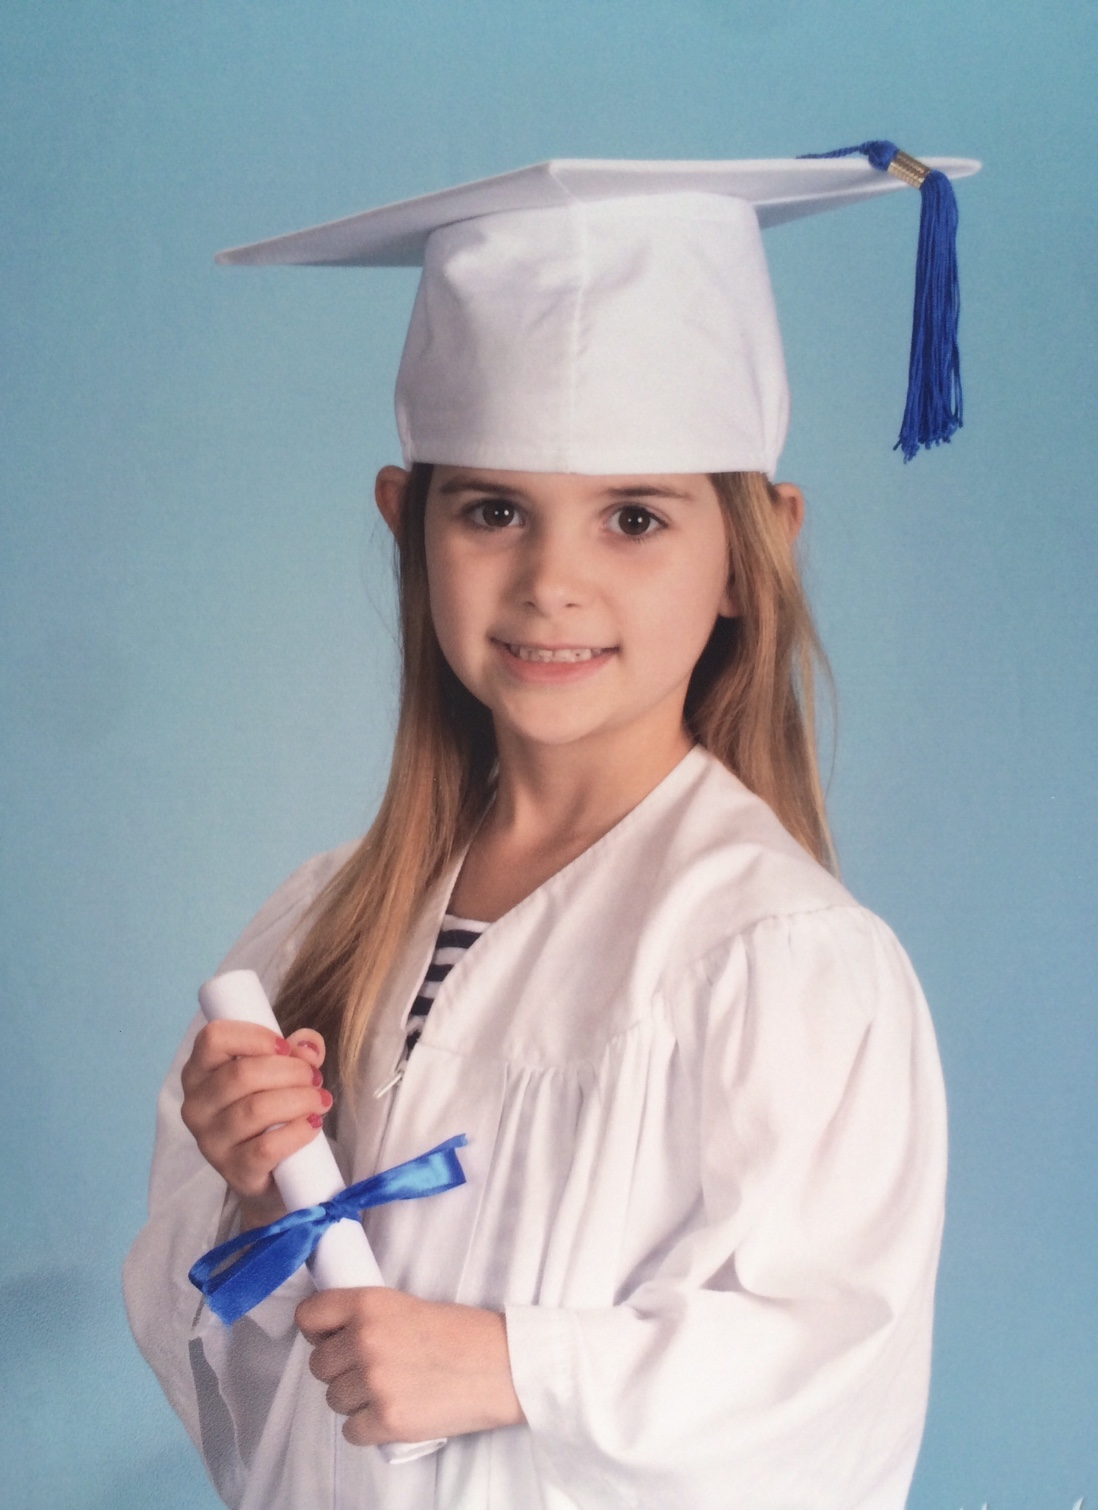 So, Preschool Graduations Are A Thing Now